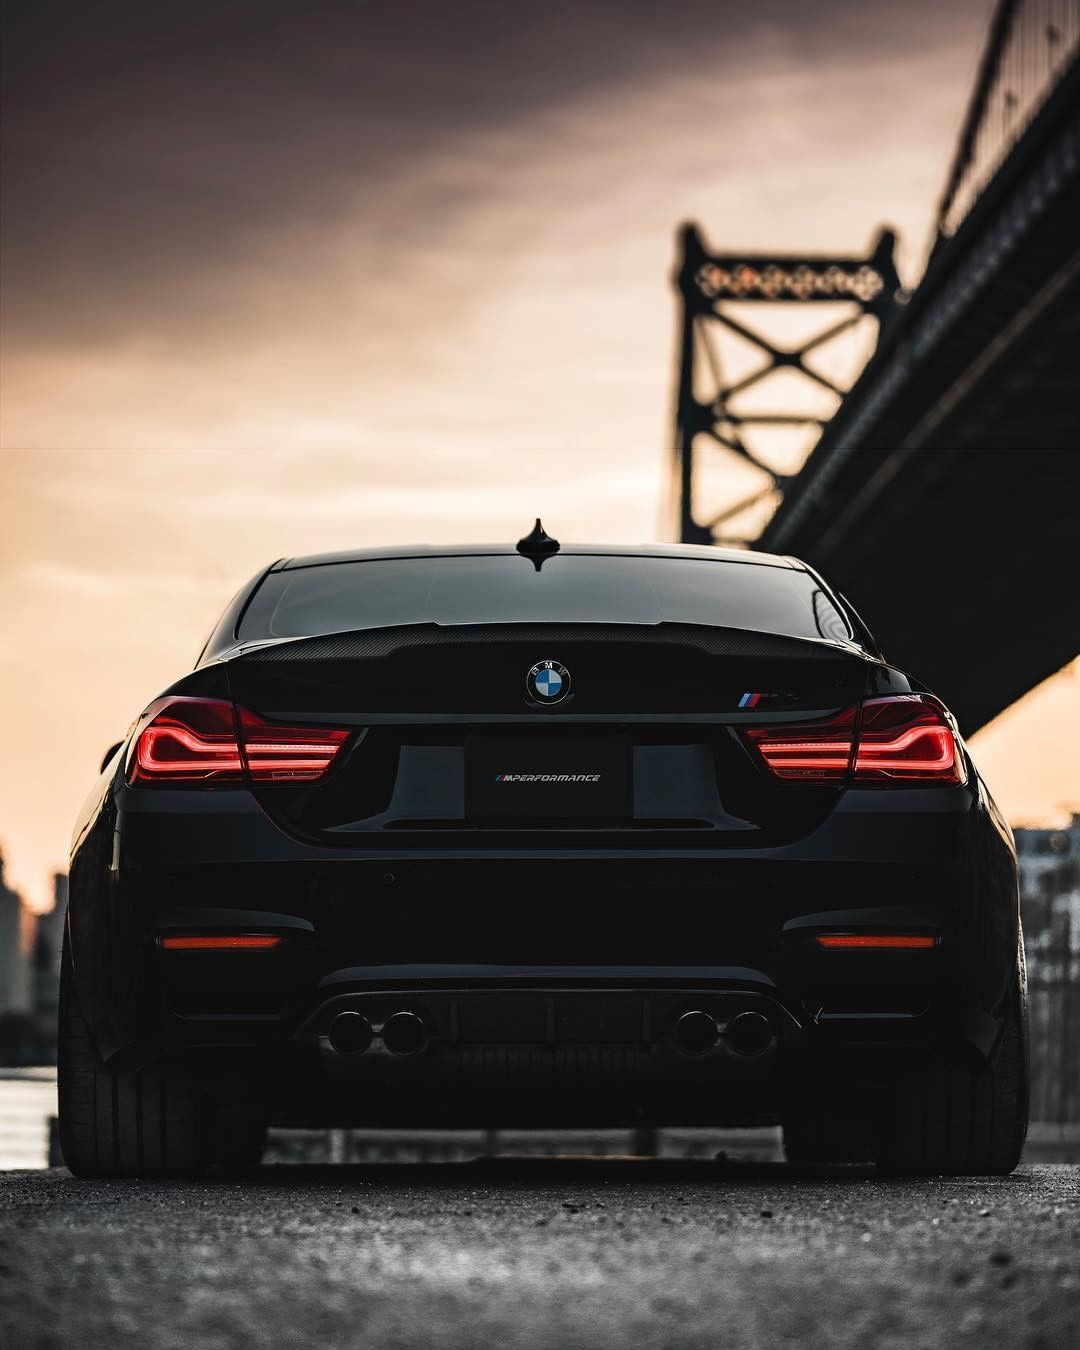 Bmw F82 M4 Competition In Black Sapphire Metallic Shadow M4 Bmw